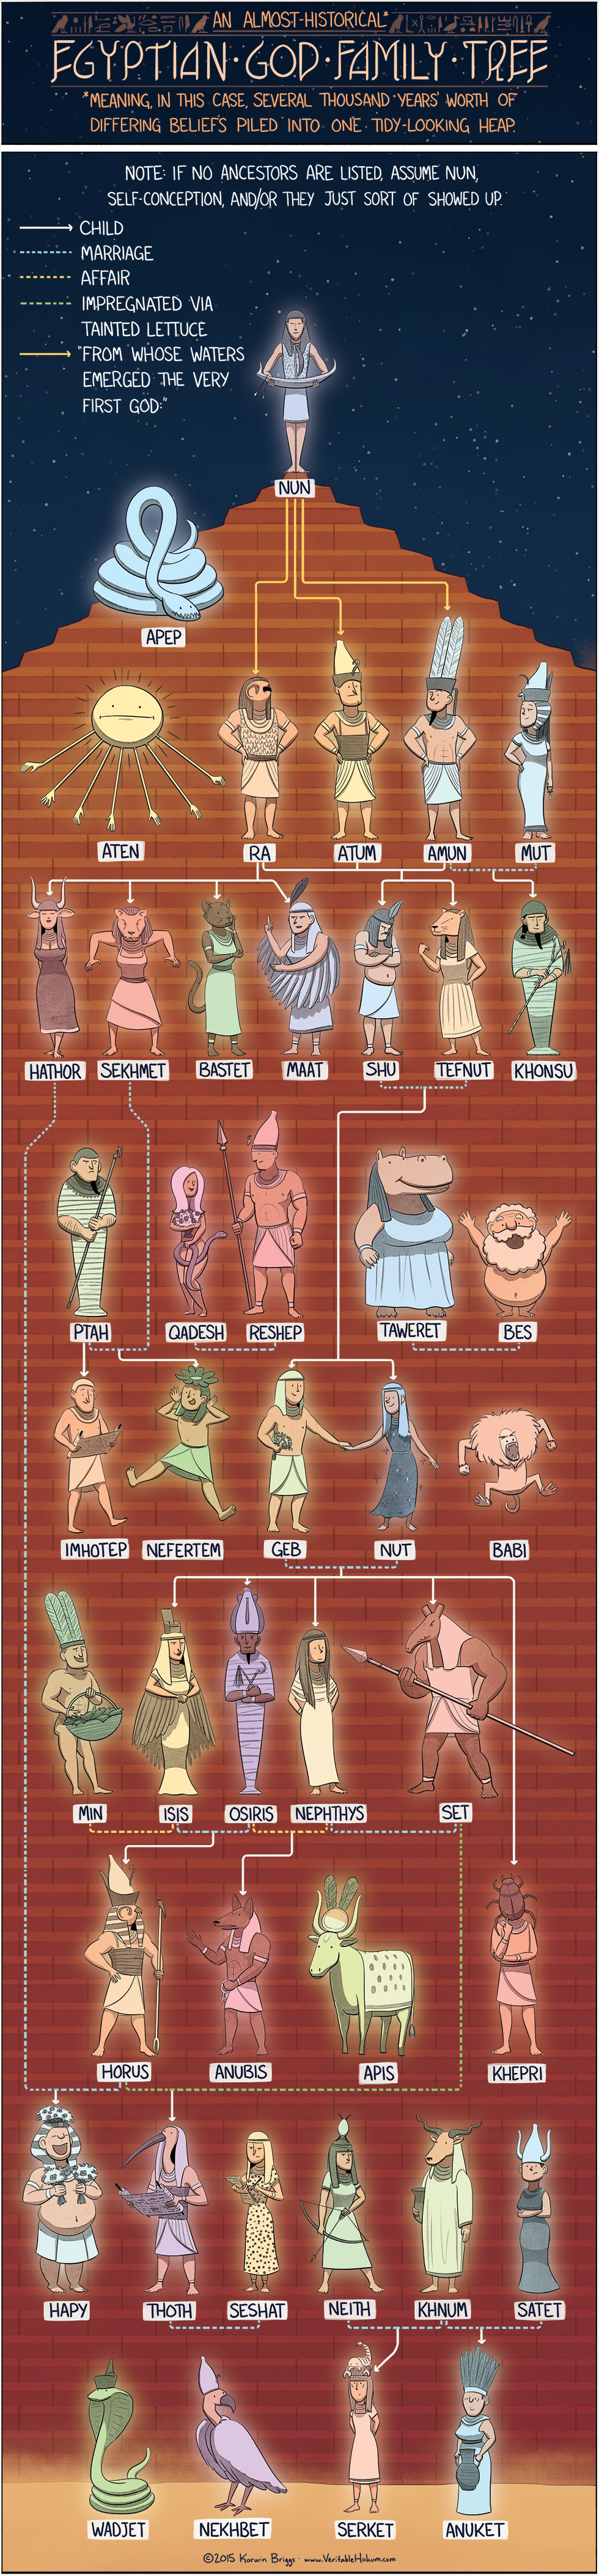 The Egyptian God Family Tree